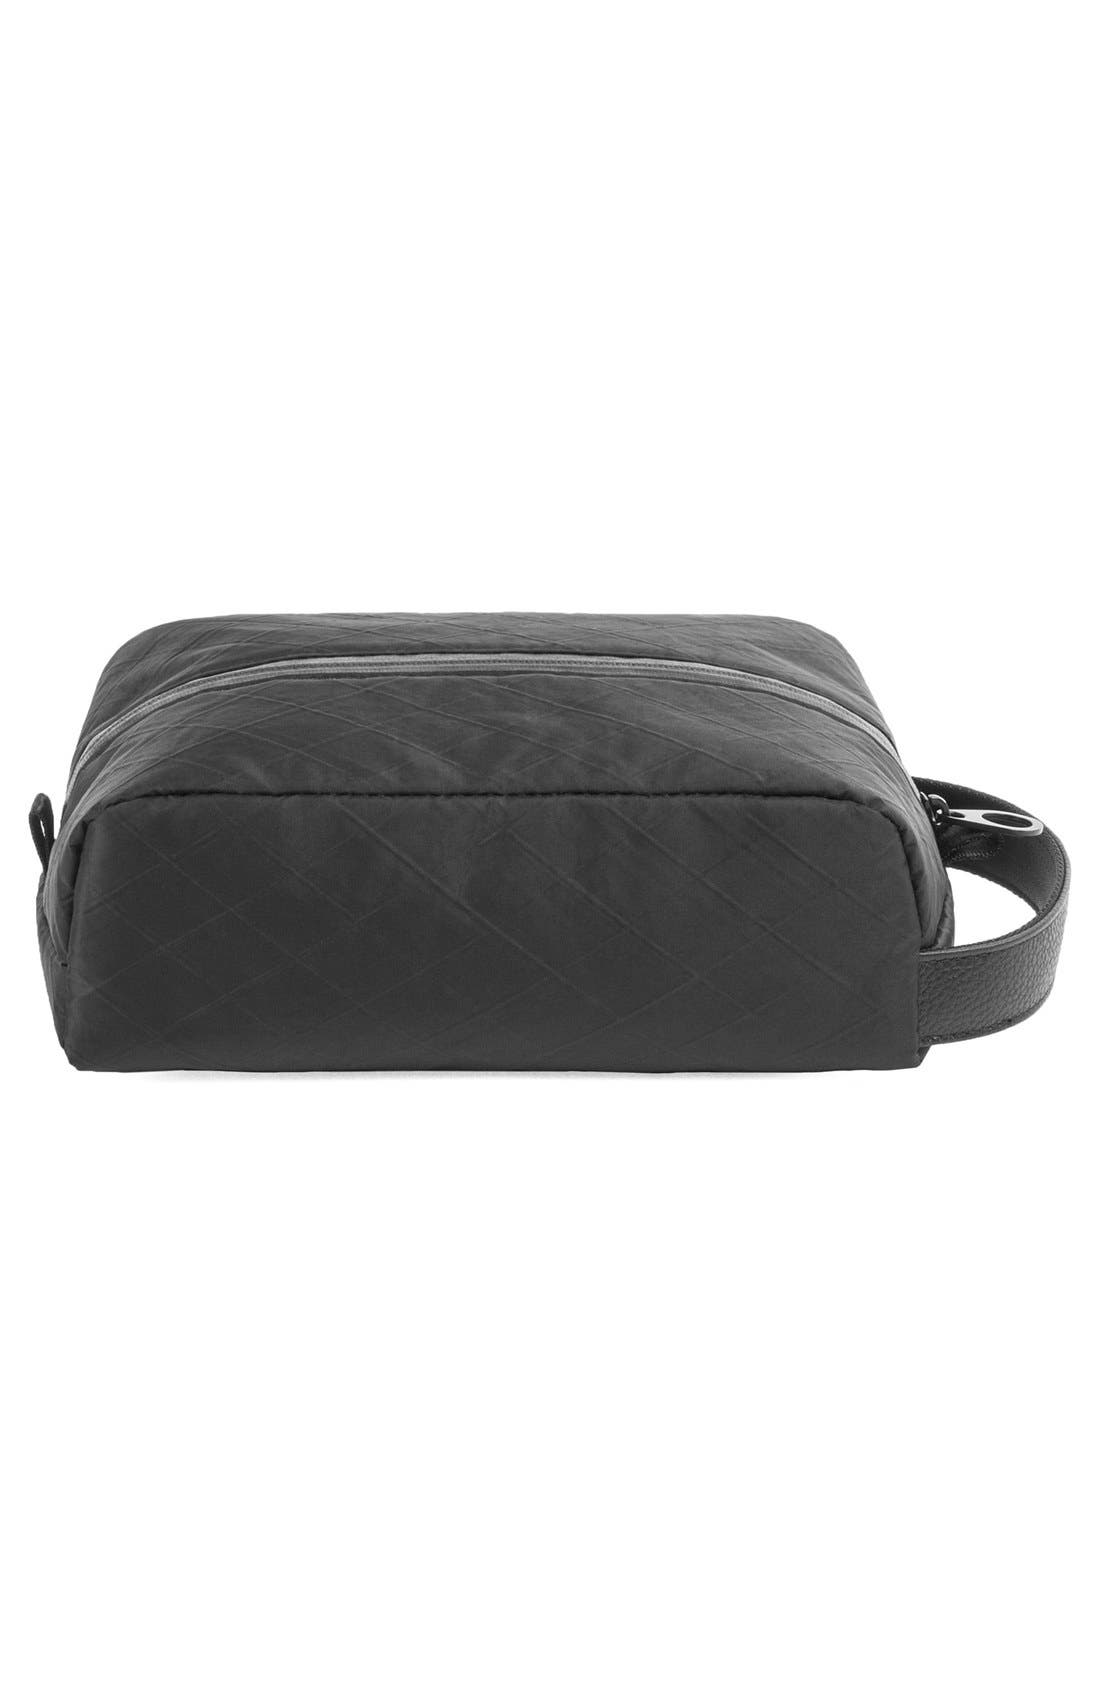 Diamond Wire Dopp Kit,                             Alternate thumbnail 10, color,                             Black